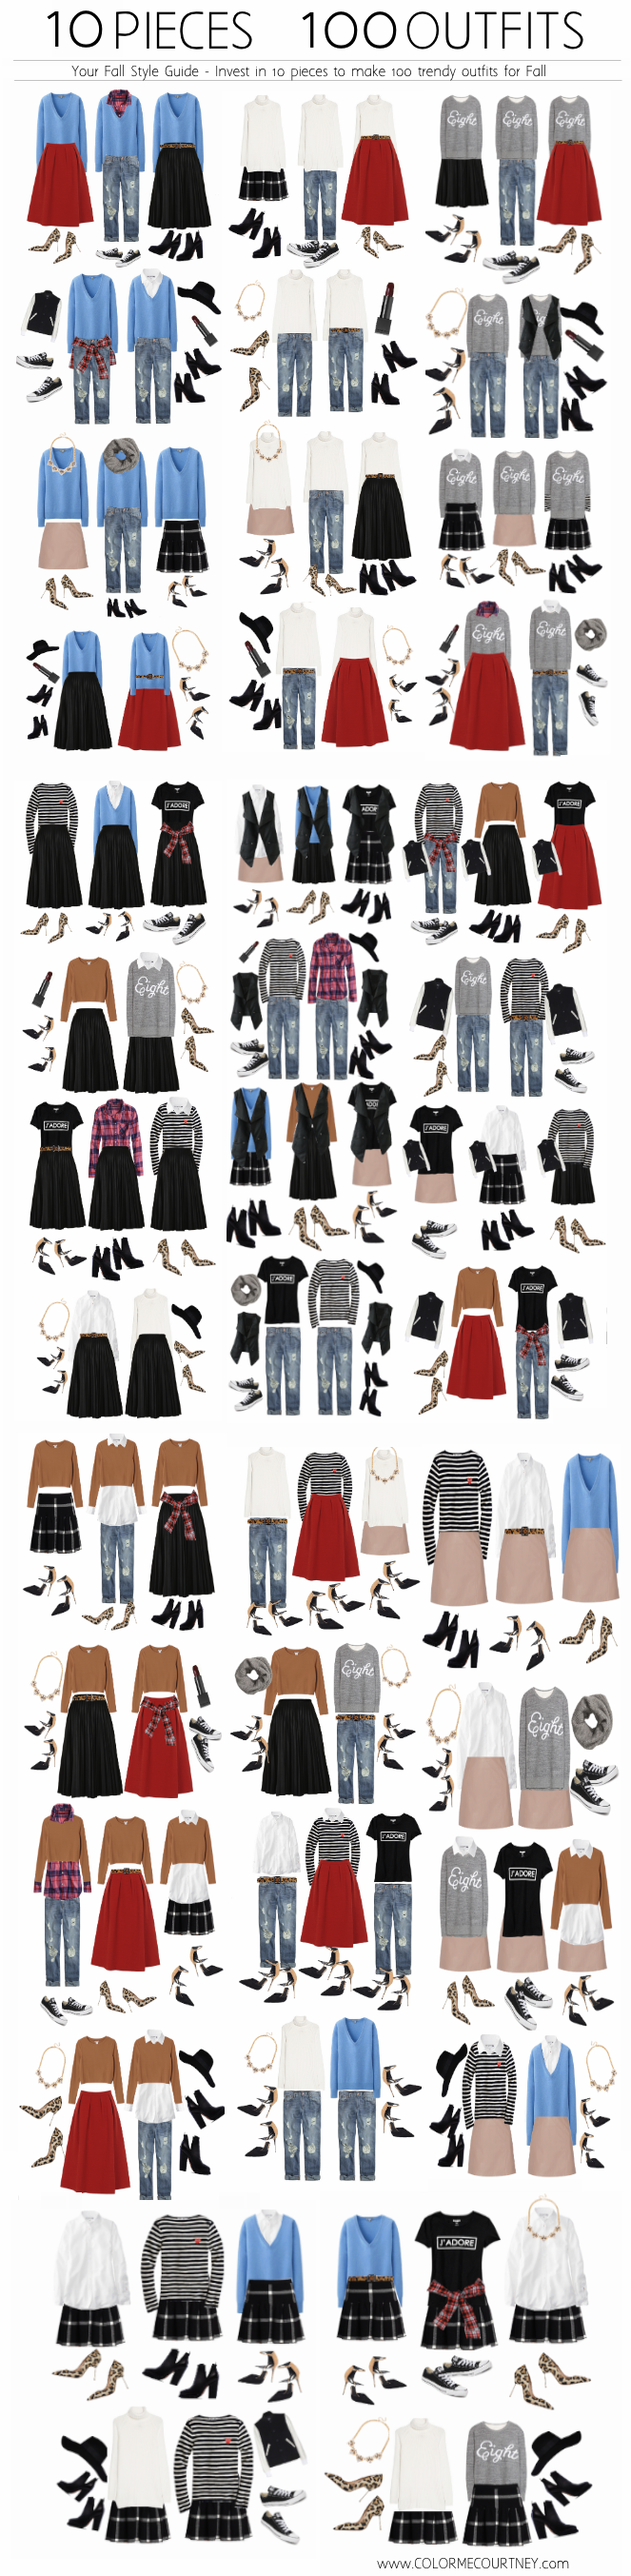 100 outfits create 100 outfits from 10 pieces 10 pieces 100 outfits what to wear for fall fall style guide fall shopping guide what to buy fro fall fall fashion fall fashion guide how to dress for fall what to wear for fall fall fashion guide how to wear 10 ways to wear ten ways to wear color me courtney color me courtney